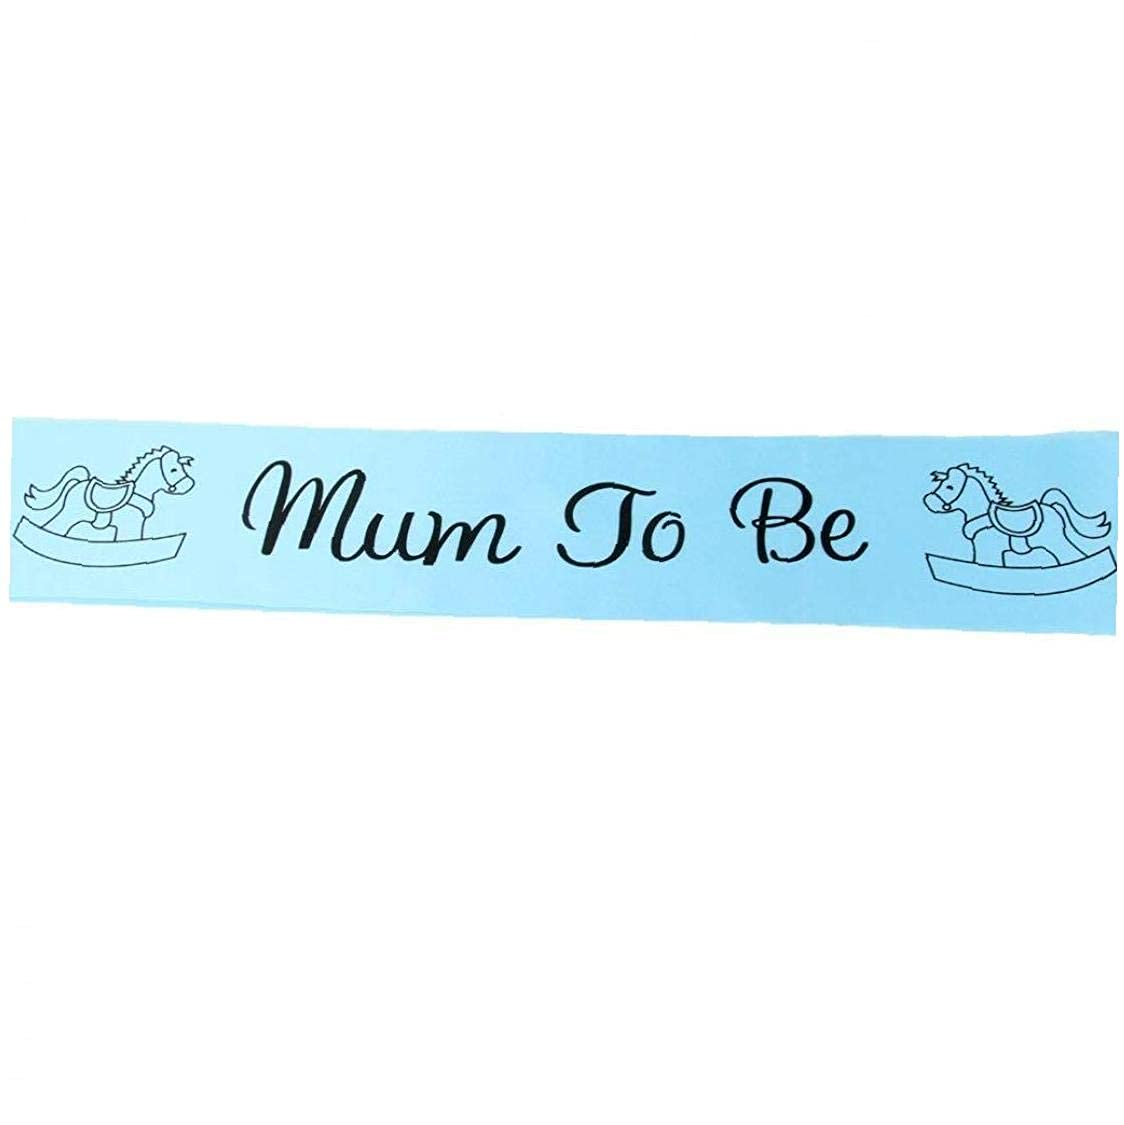 BANAMANA Mum to Be Sash Baby Shower Party Decoration Blue Clothes Supplies